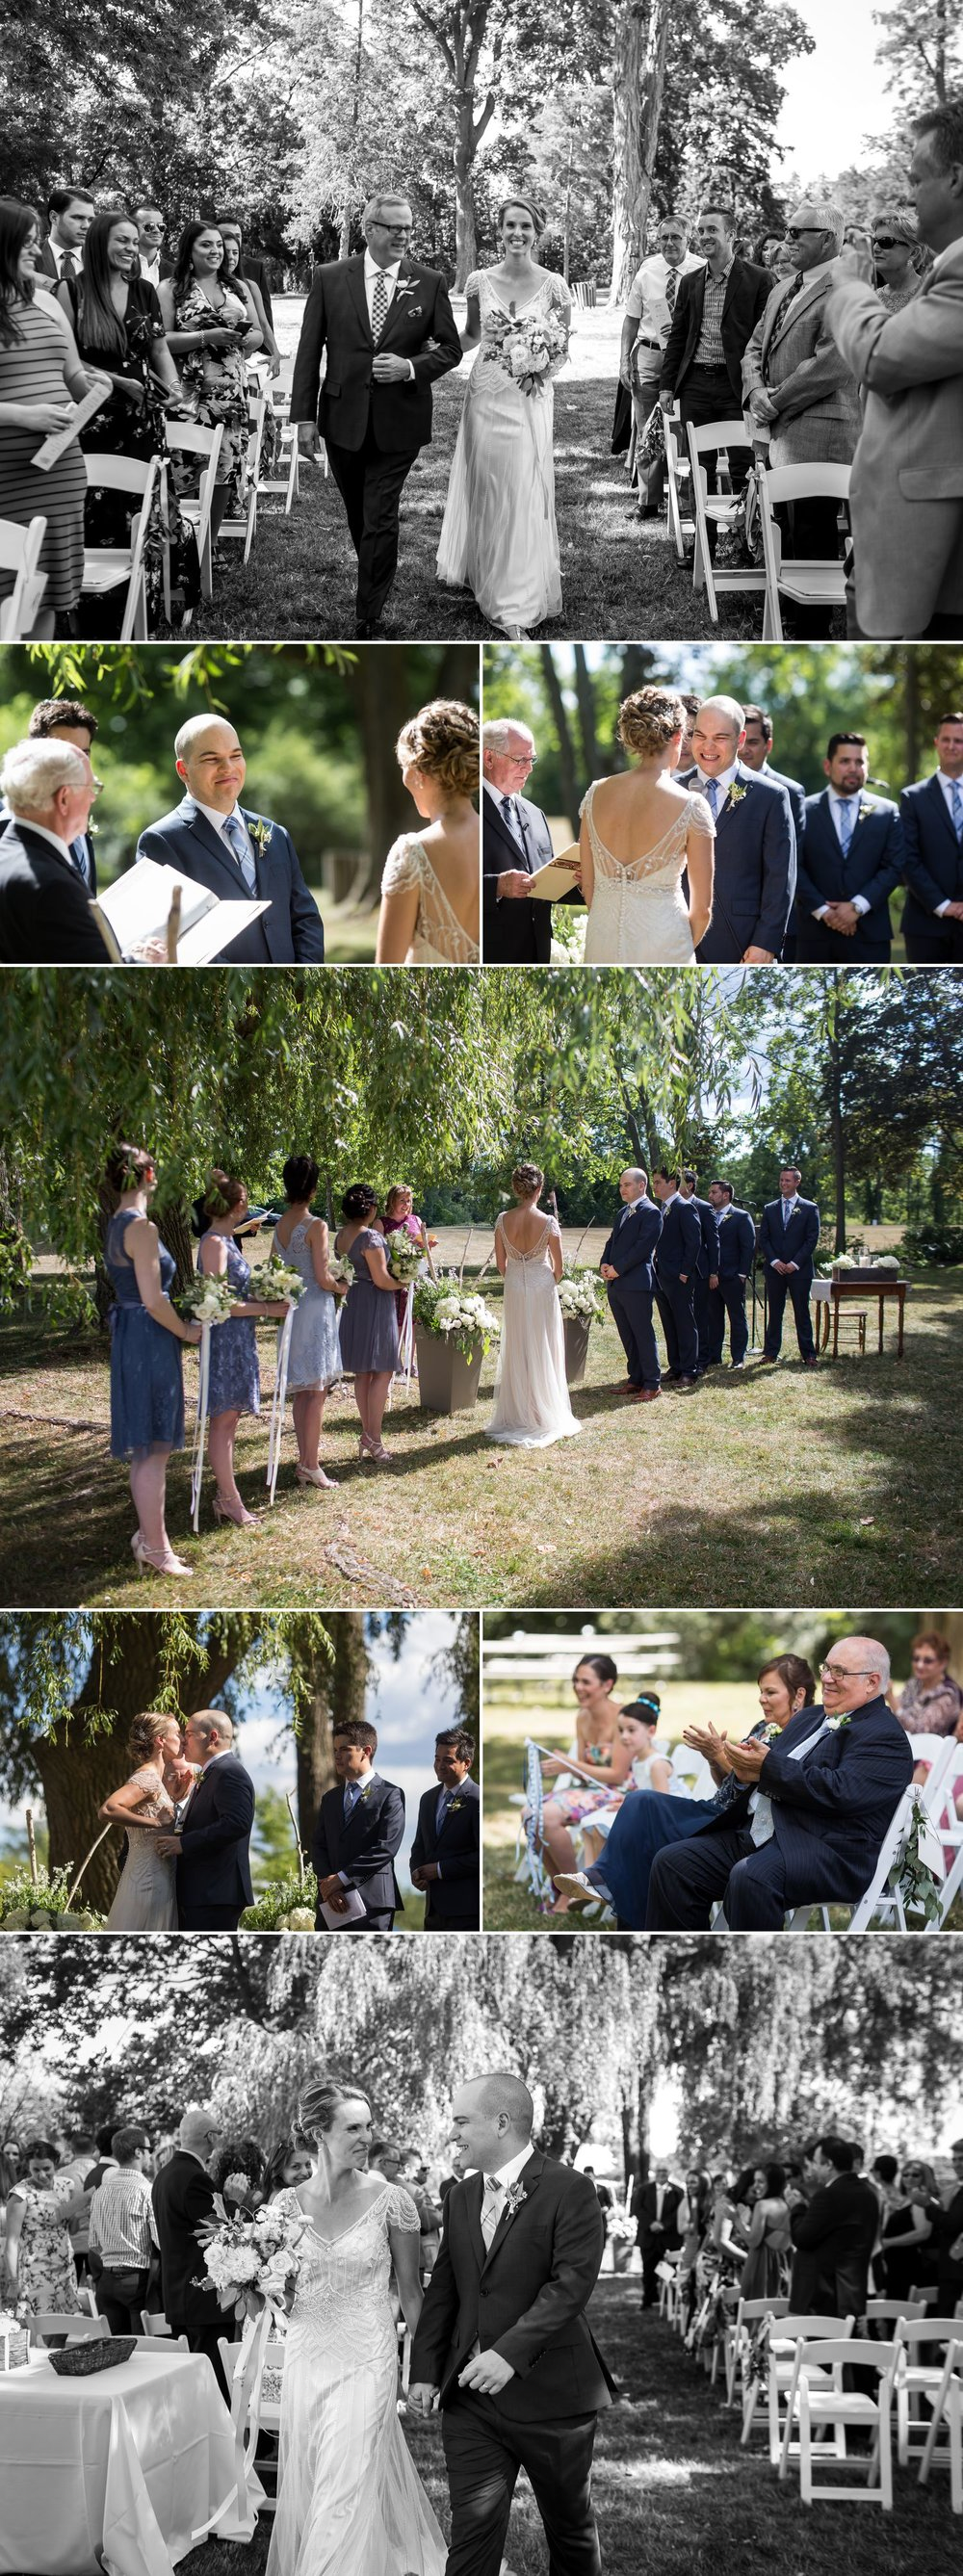 A outdoor wedding ceremony taking place at Ruthven Heritage Estate